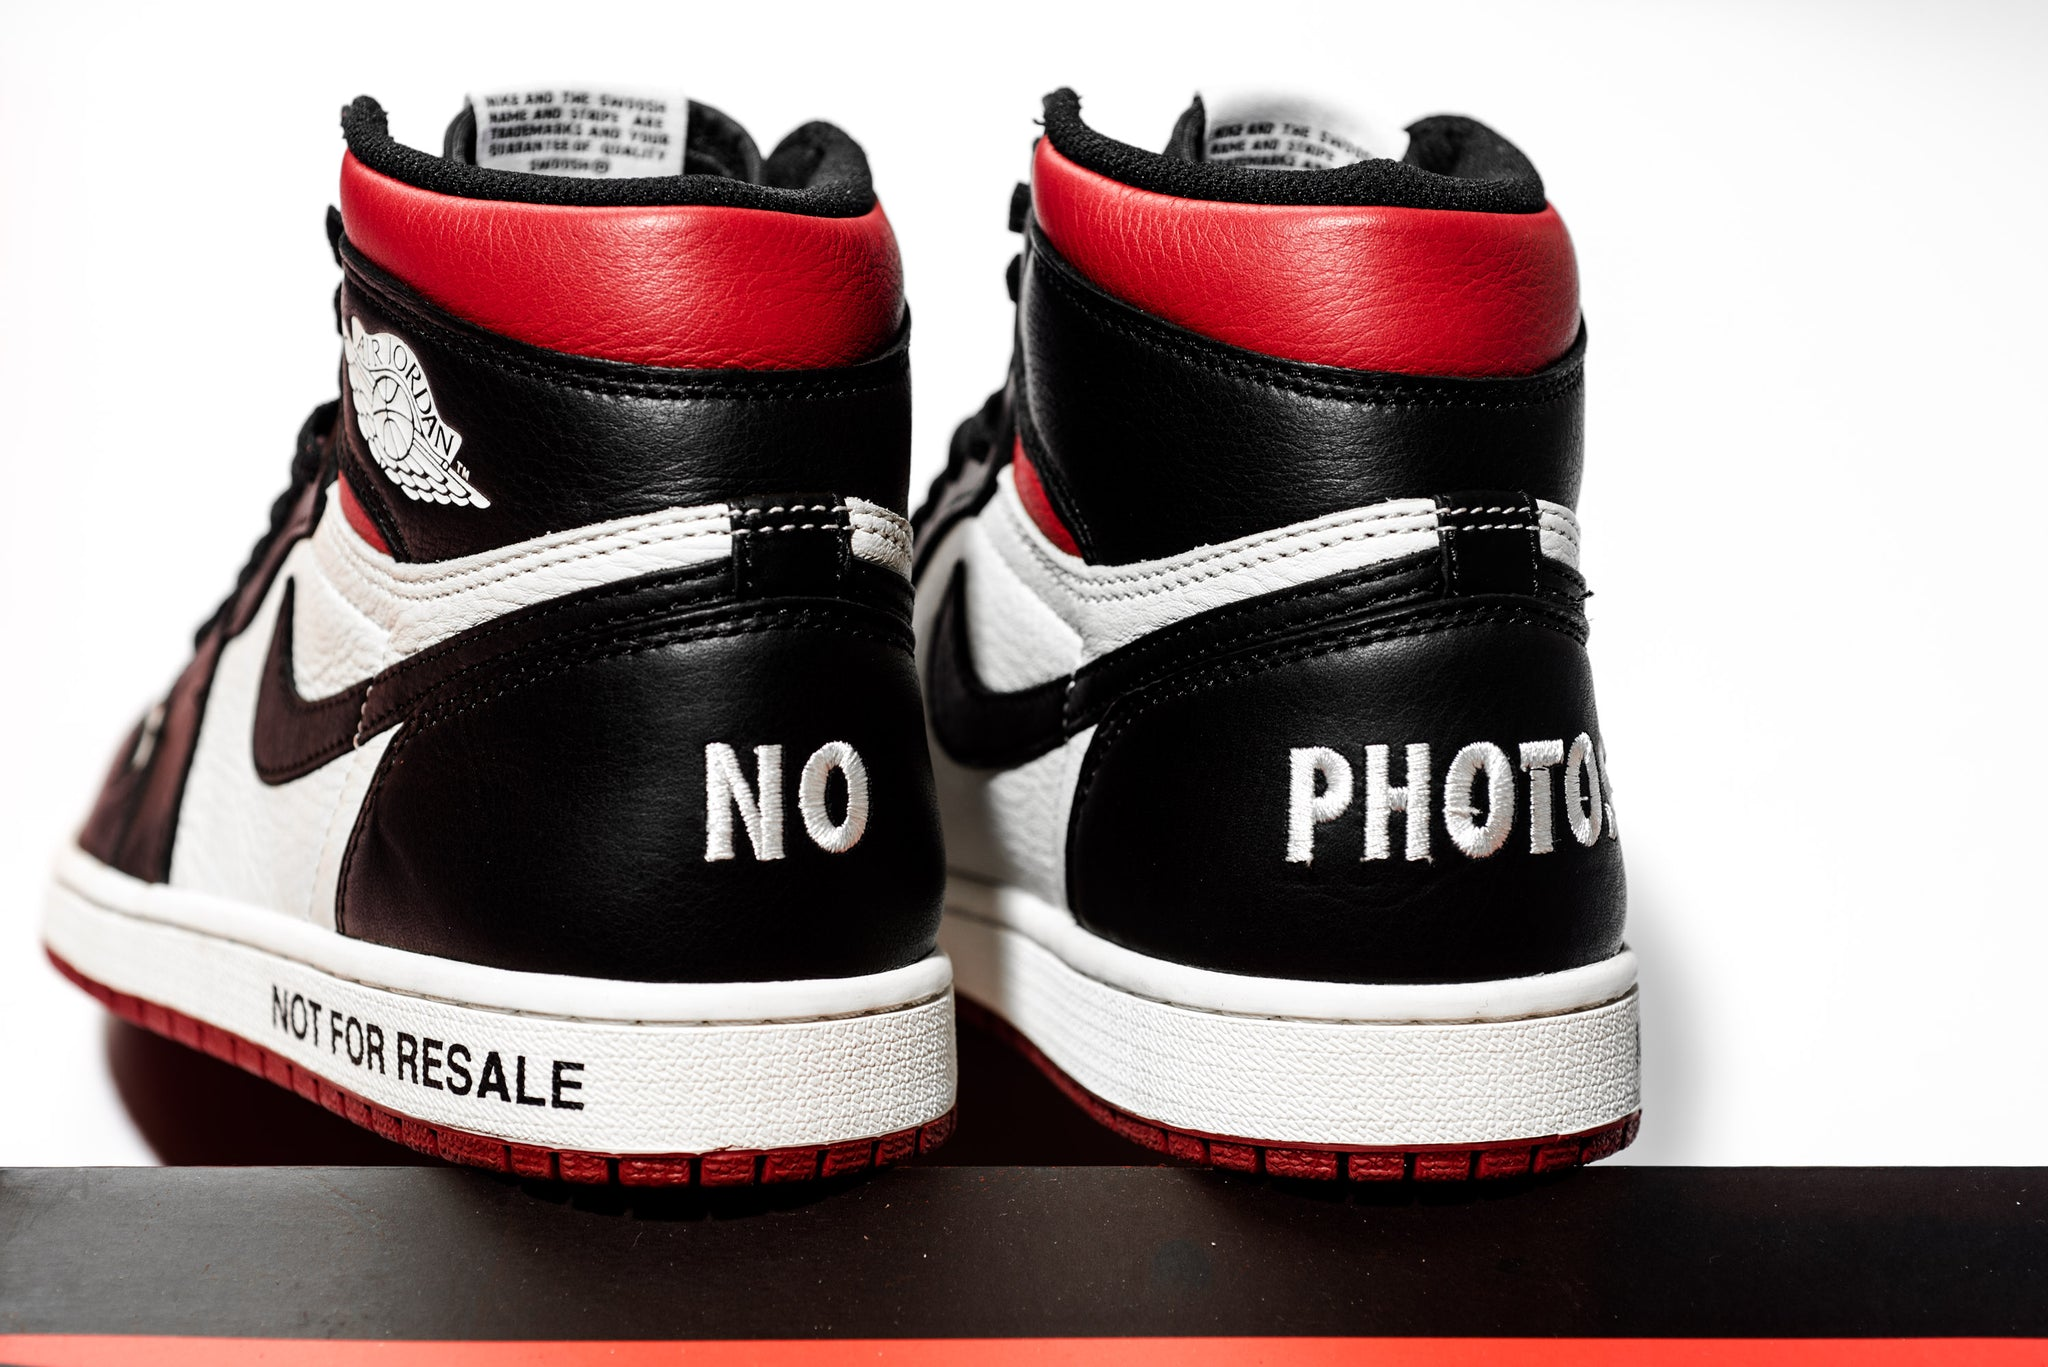 timeless design d9ad2 e9905 Air Jordan 1 Retro High OG NRG - Not For Resale - Sneaker ...